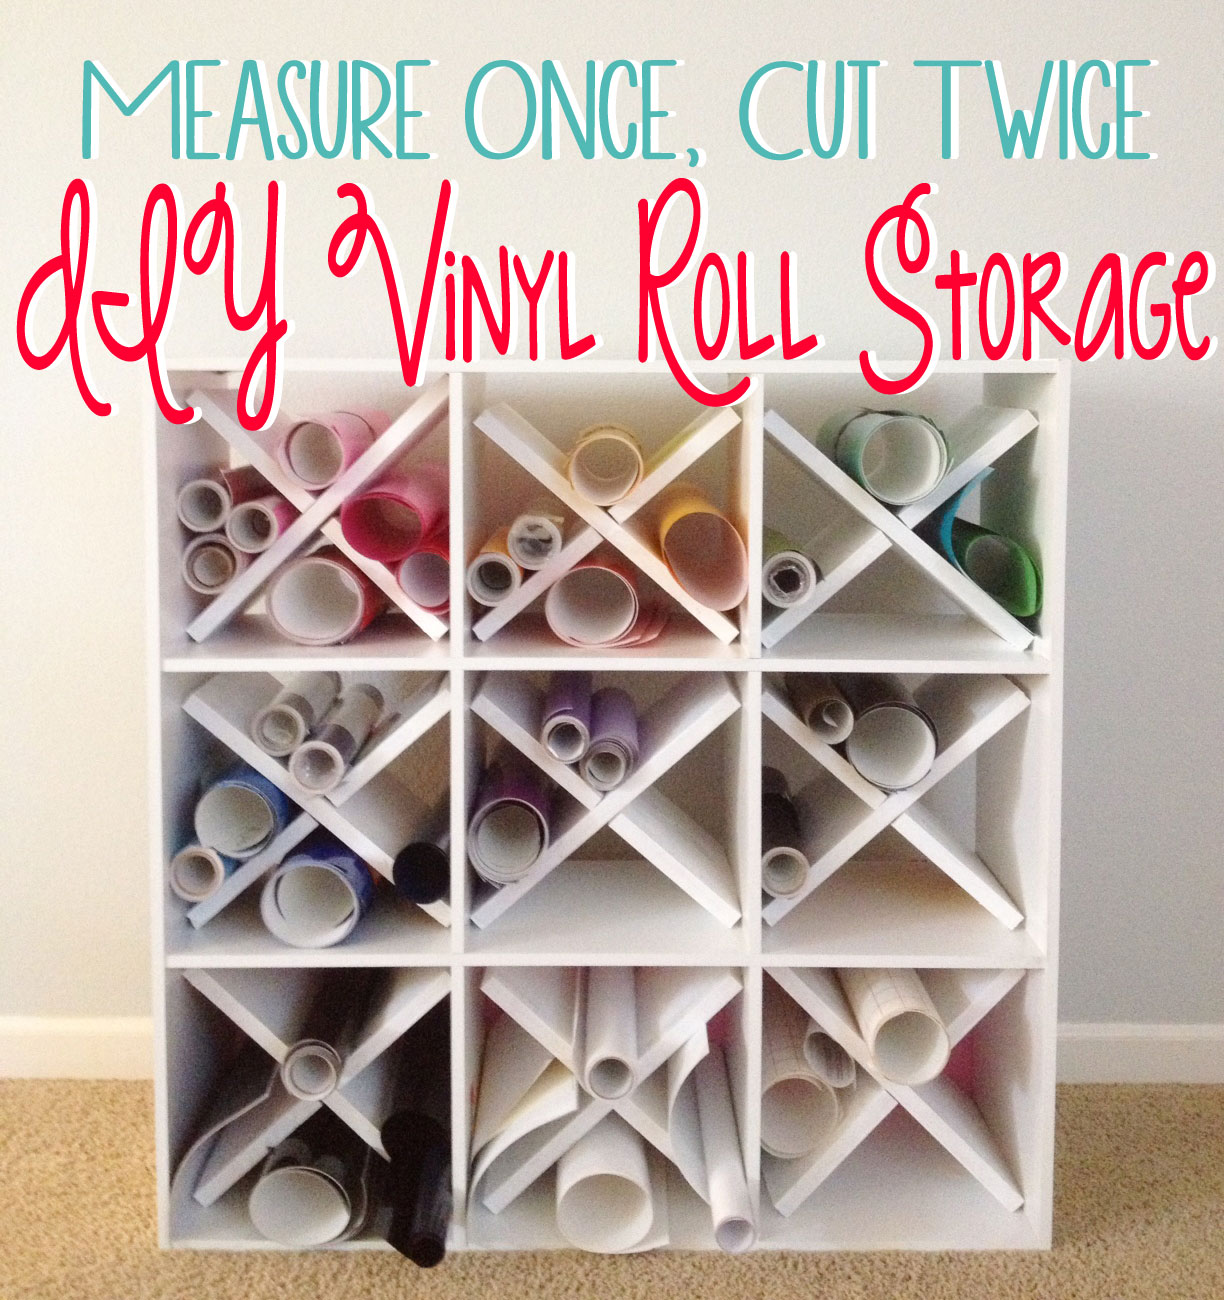 Vinyl Storage Ideas The Vinyl Cut